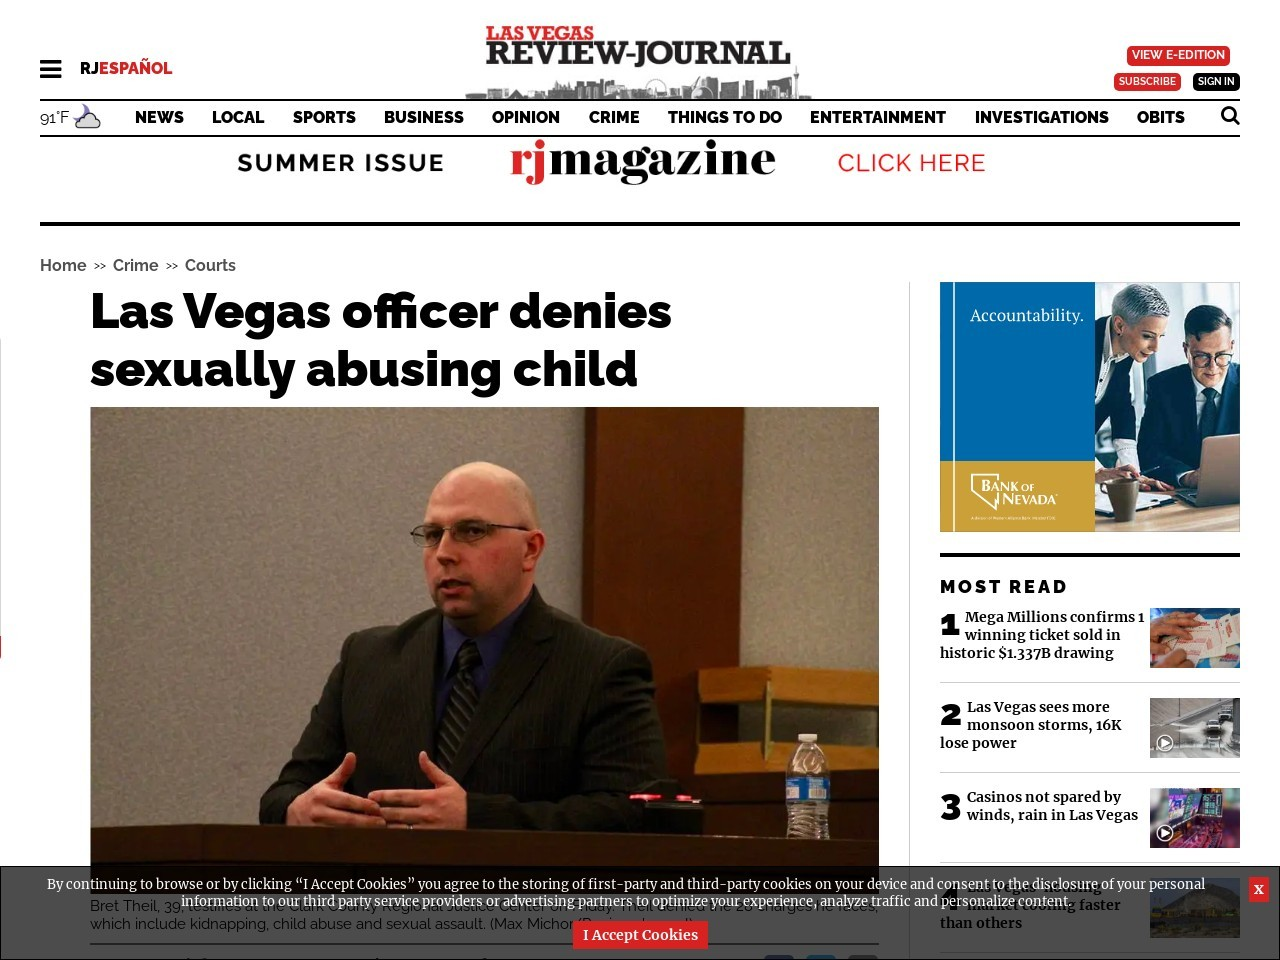 Las Vegas officer denies sexually abusing child